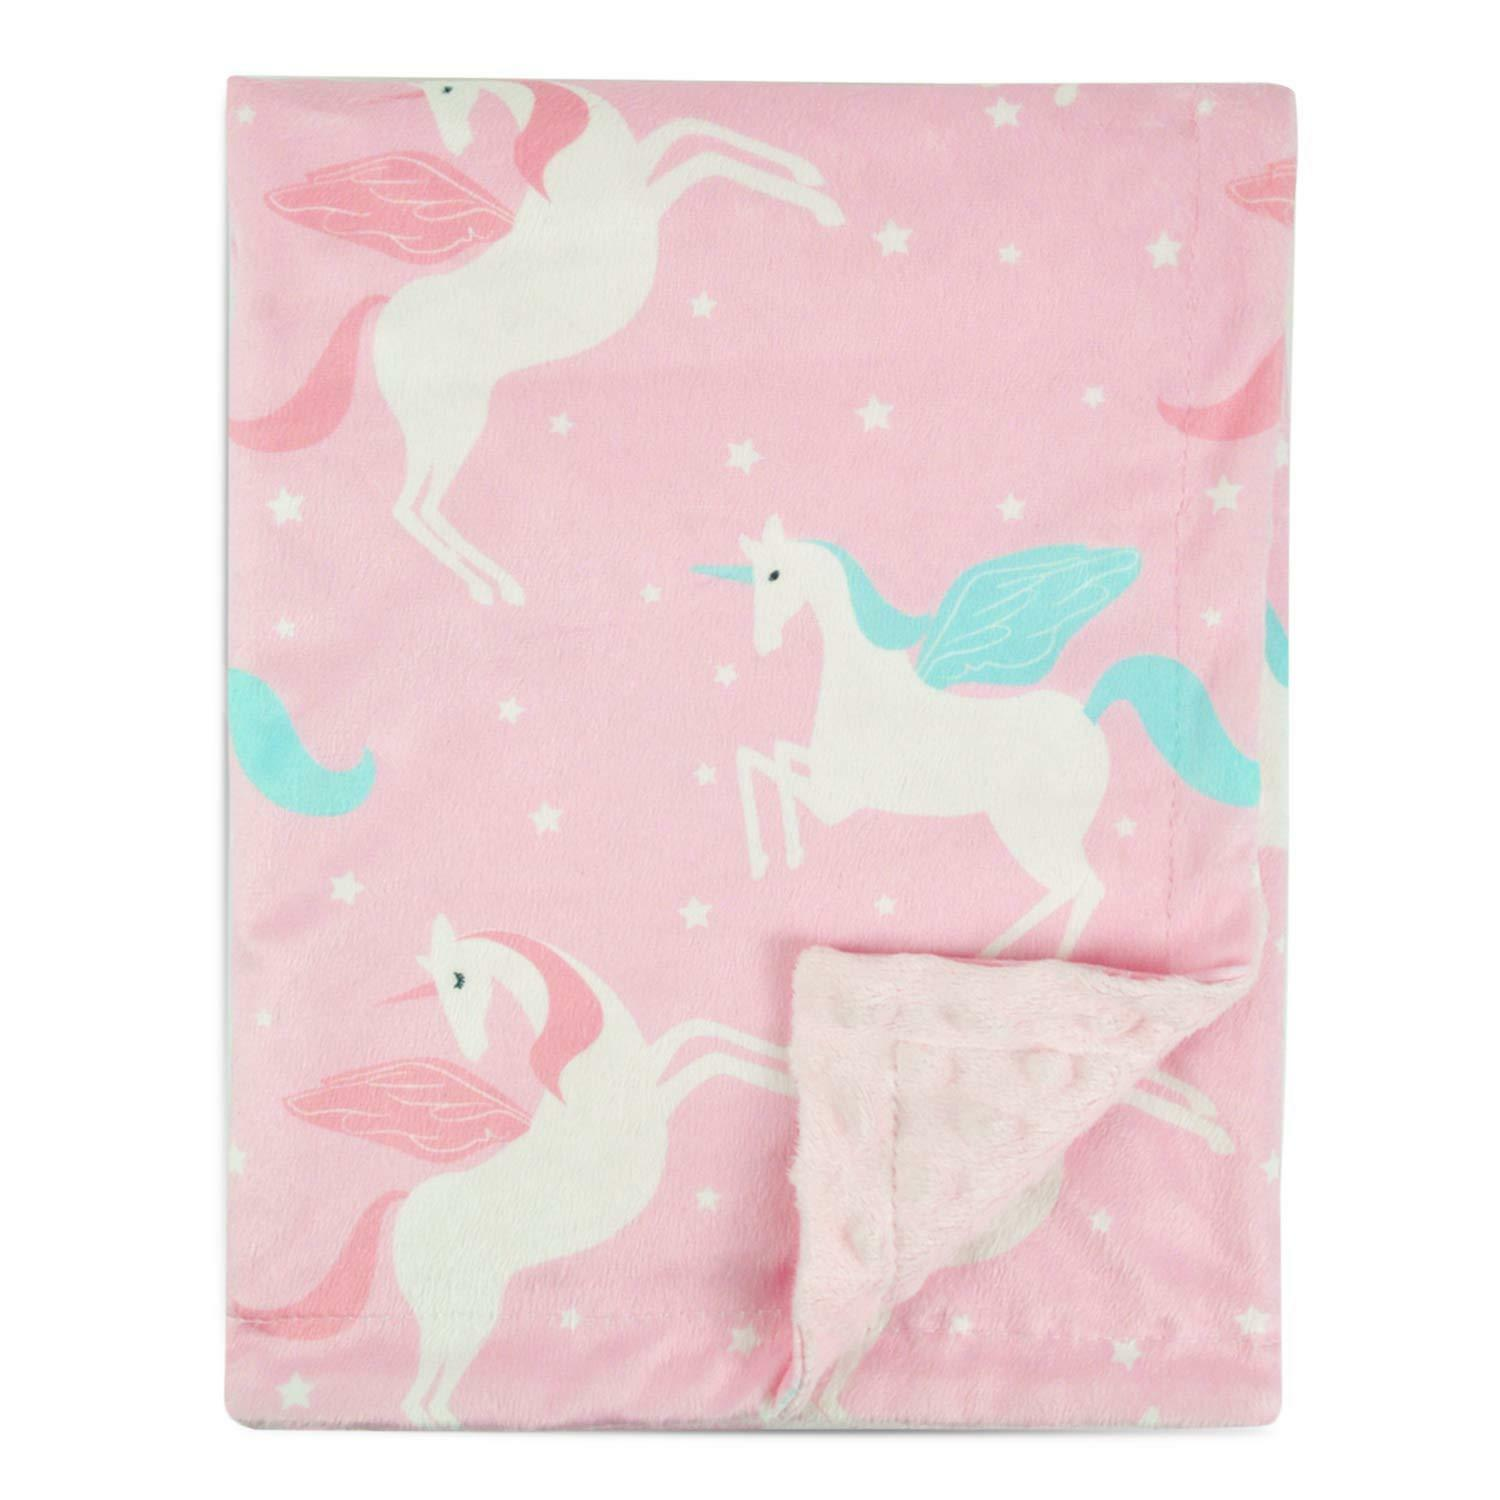 Boritar Unicorn Baby Blanket for Girls Soft Minky with Doubl